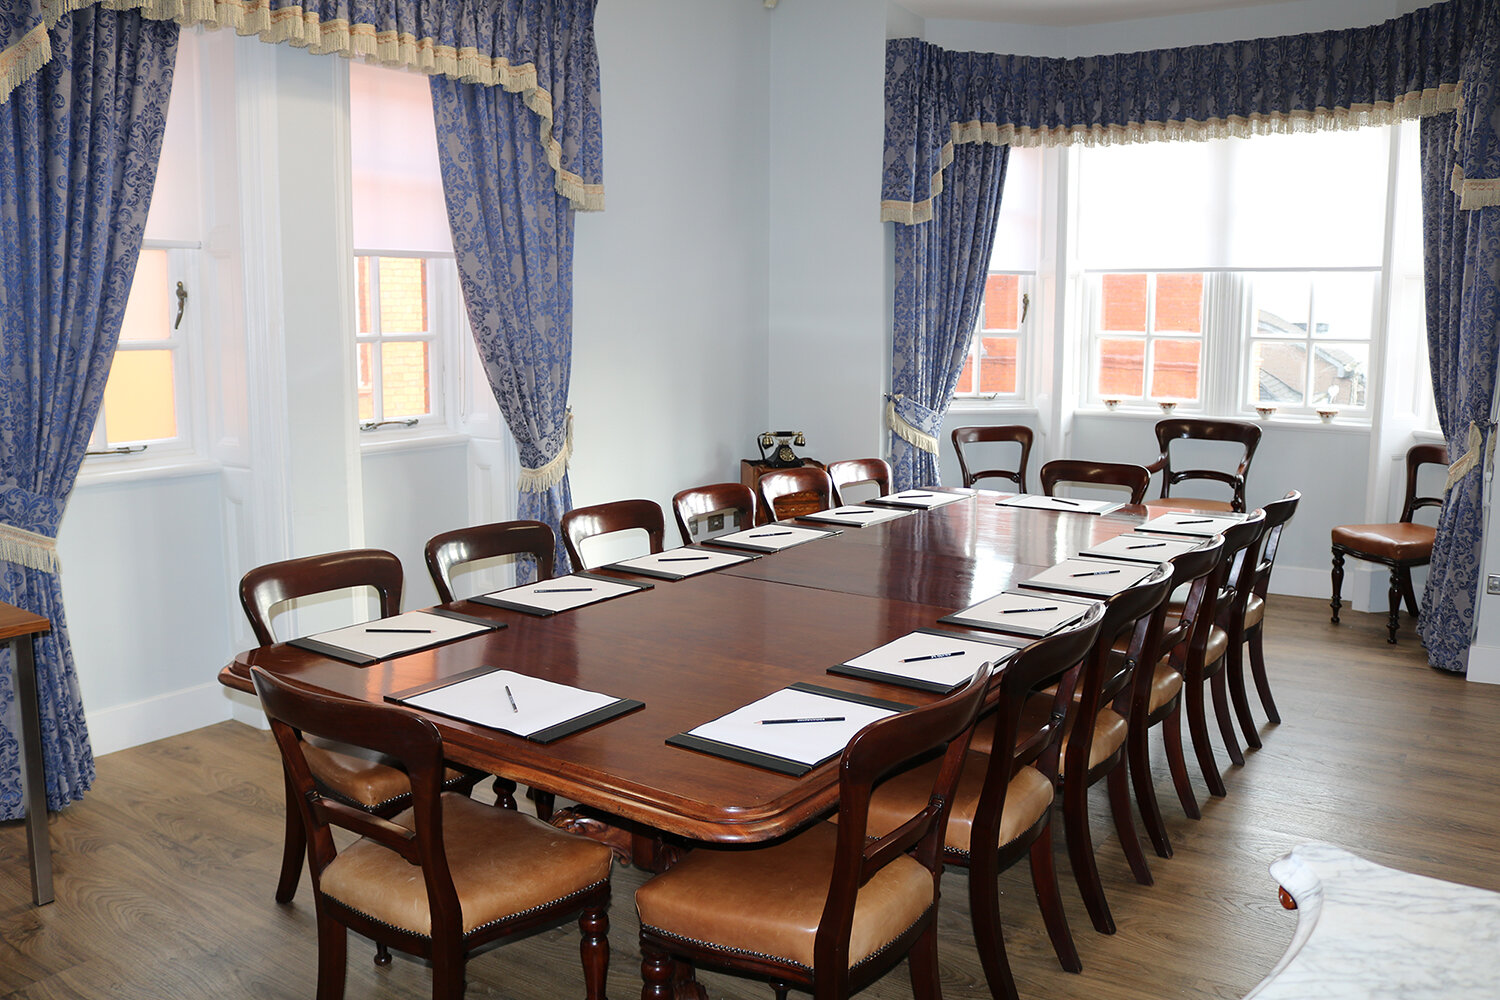 Dining Room - The first floor fine dining room is a private, elegant space, occupying a high-ceilinged room with a view of our courtyard from the bay window. This space can seat up to 12 people. It is a popular choice for boardroom style meetings and for dining.